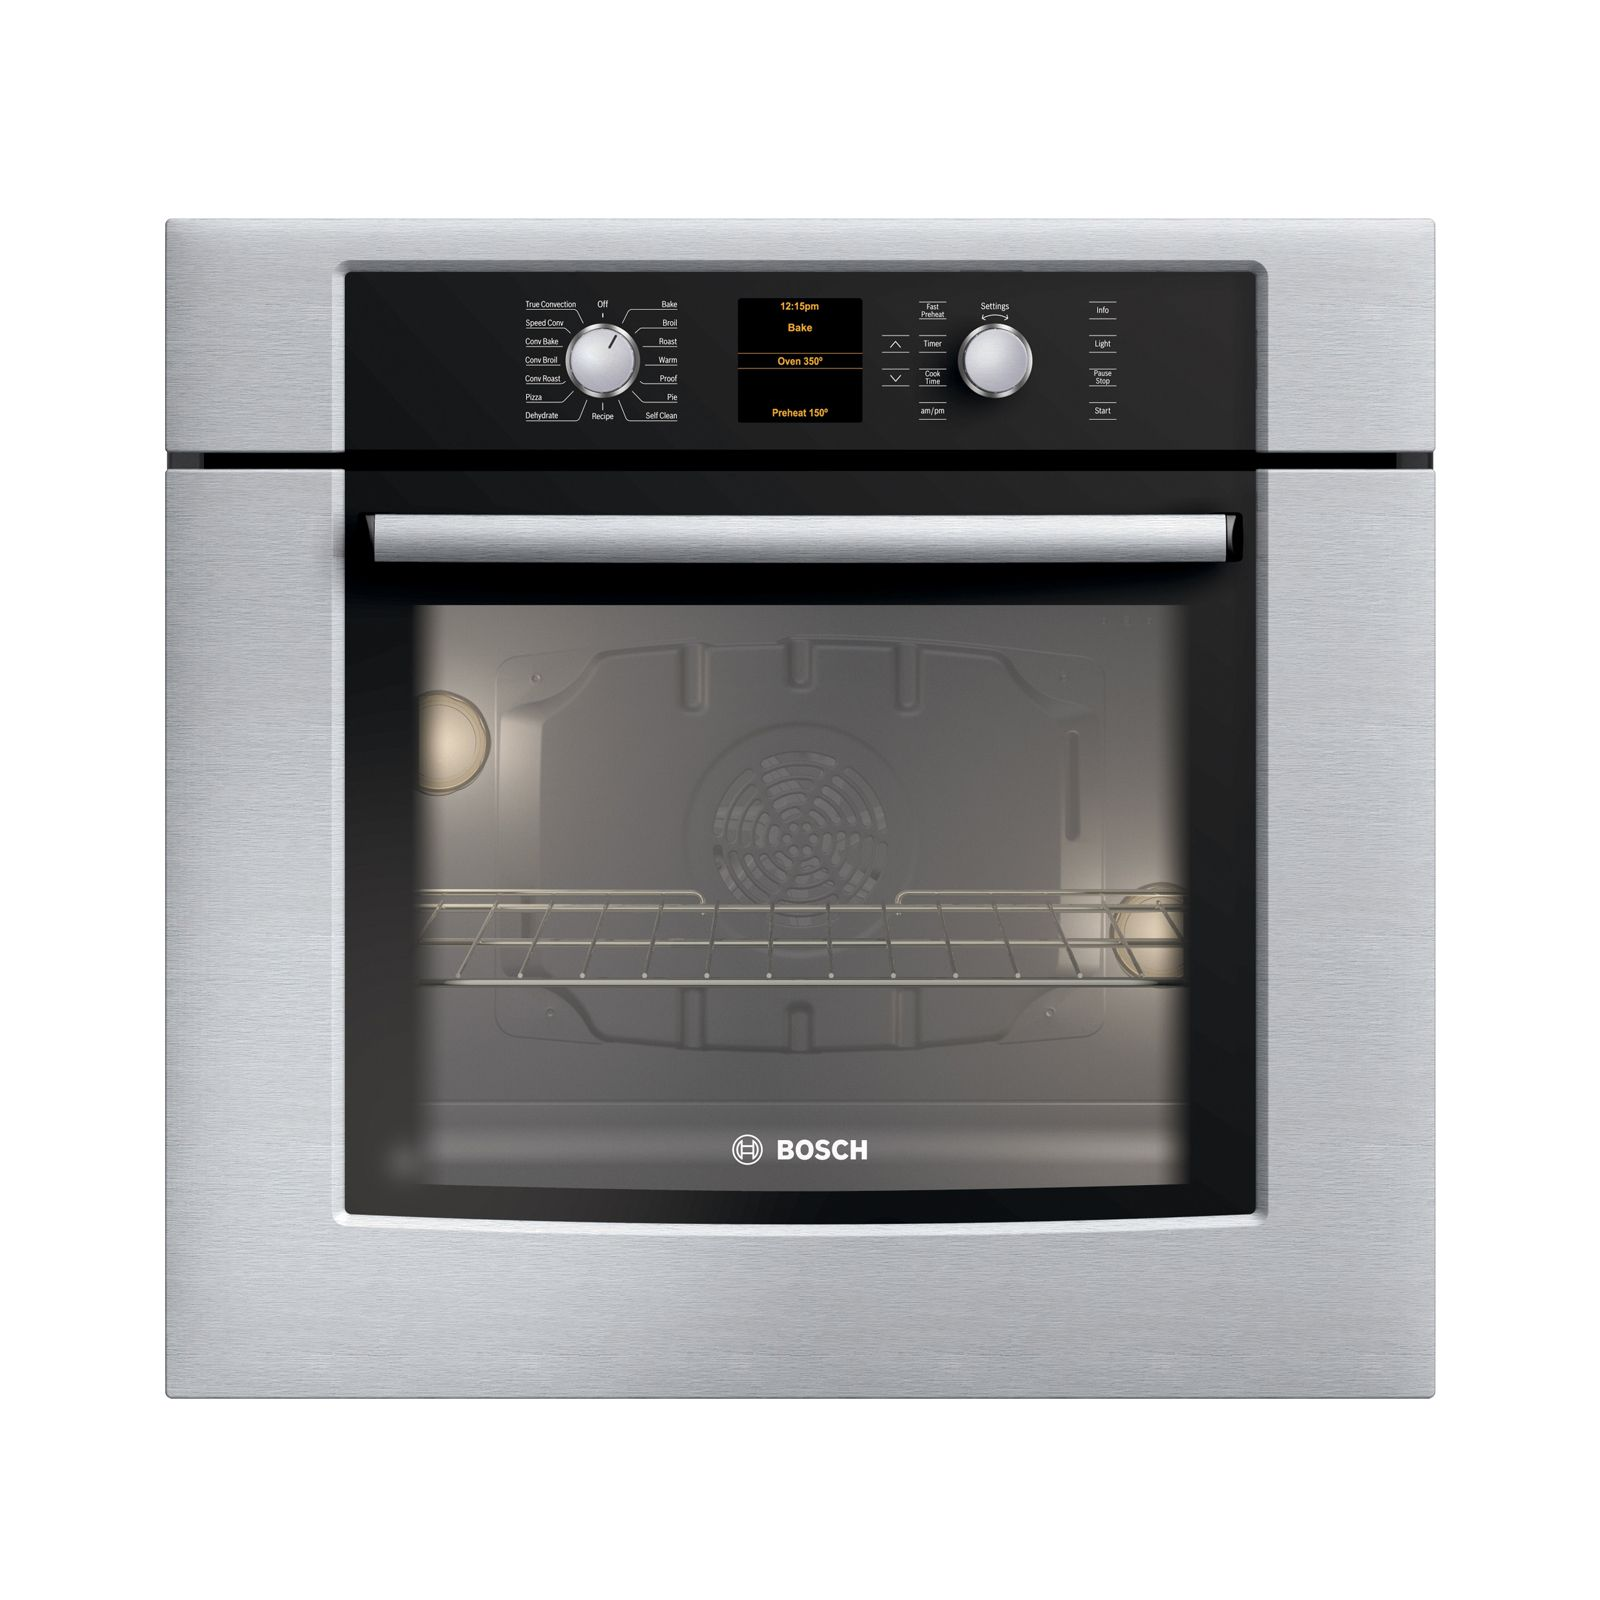 Bosch hbn3450uc 27 single electric wall oven sears for Bosch outlet